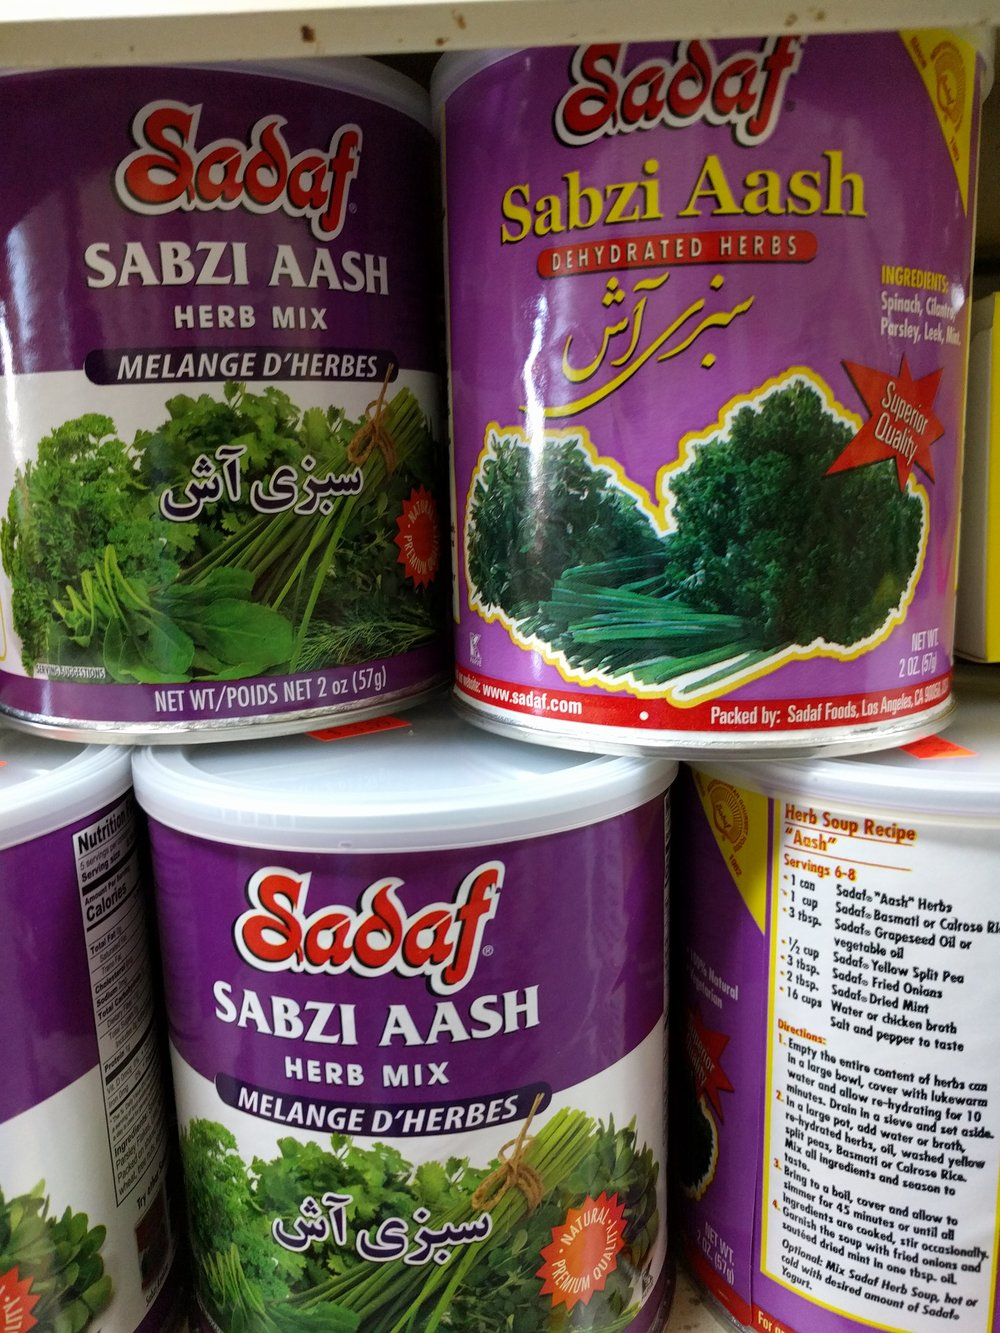 Sadaf-herb-mix-Pak-Halal-International-Foods-12259-W-87th-St-Pkwy-Lenexa-KS-66215-3.jpg